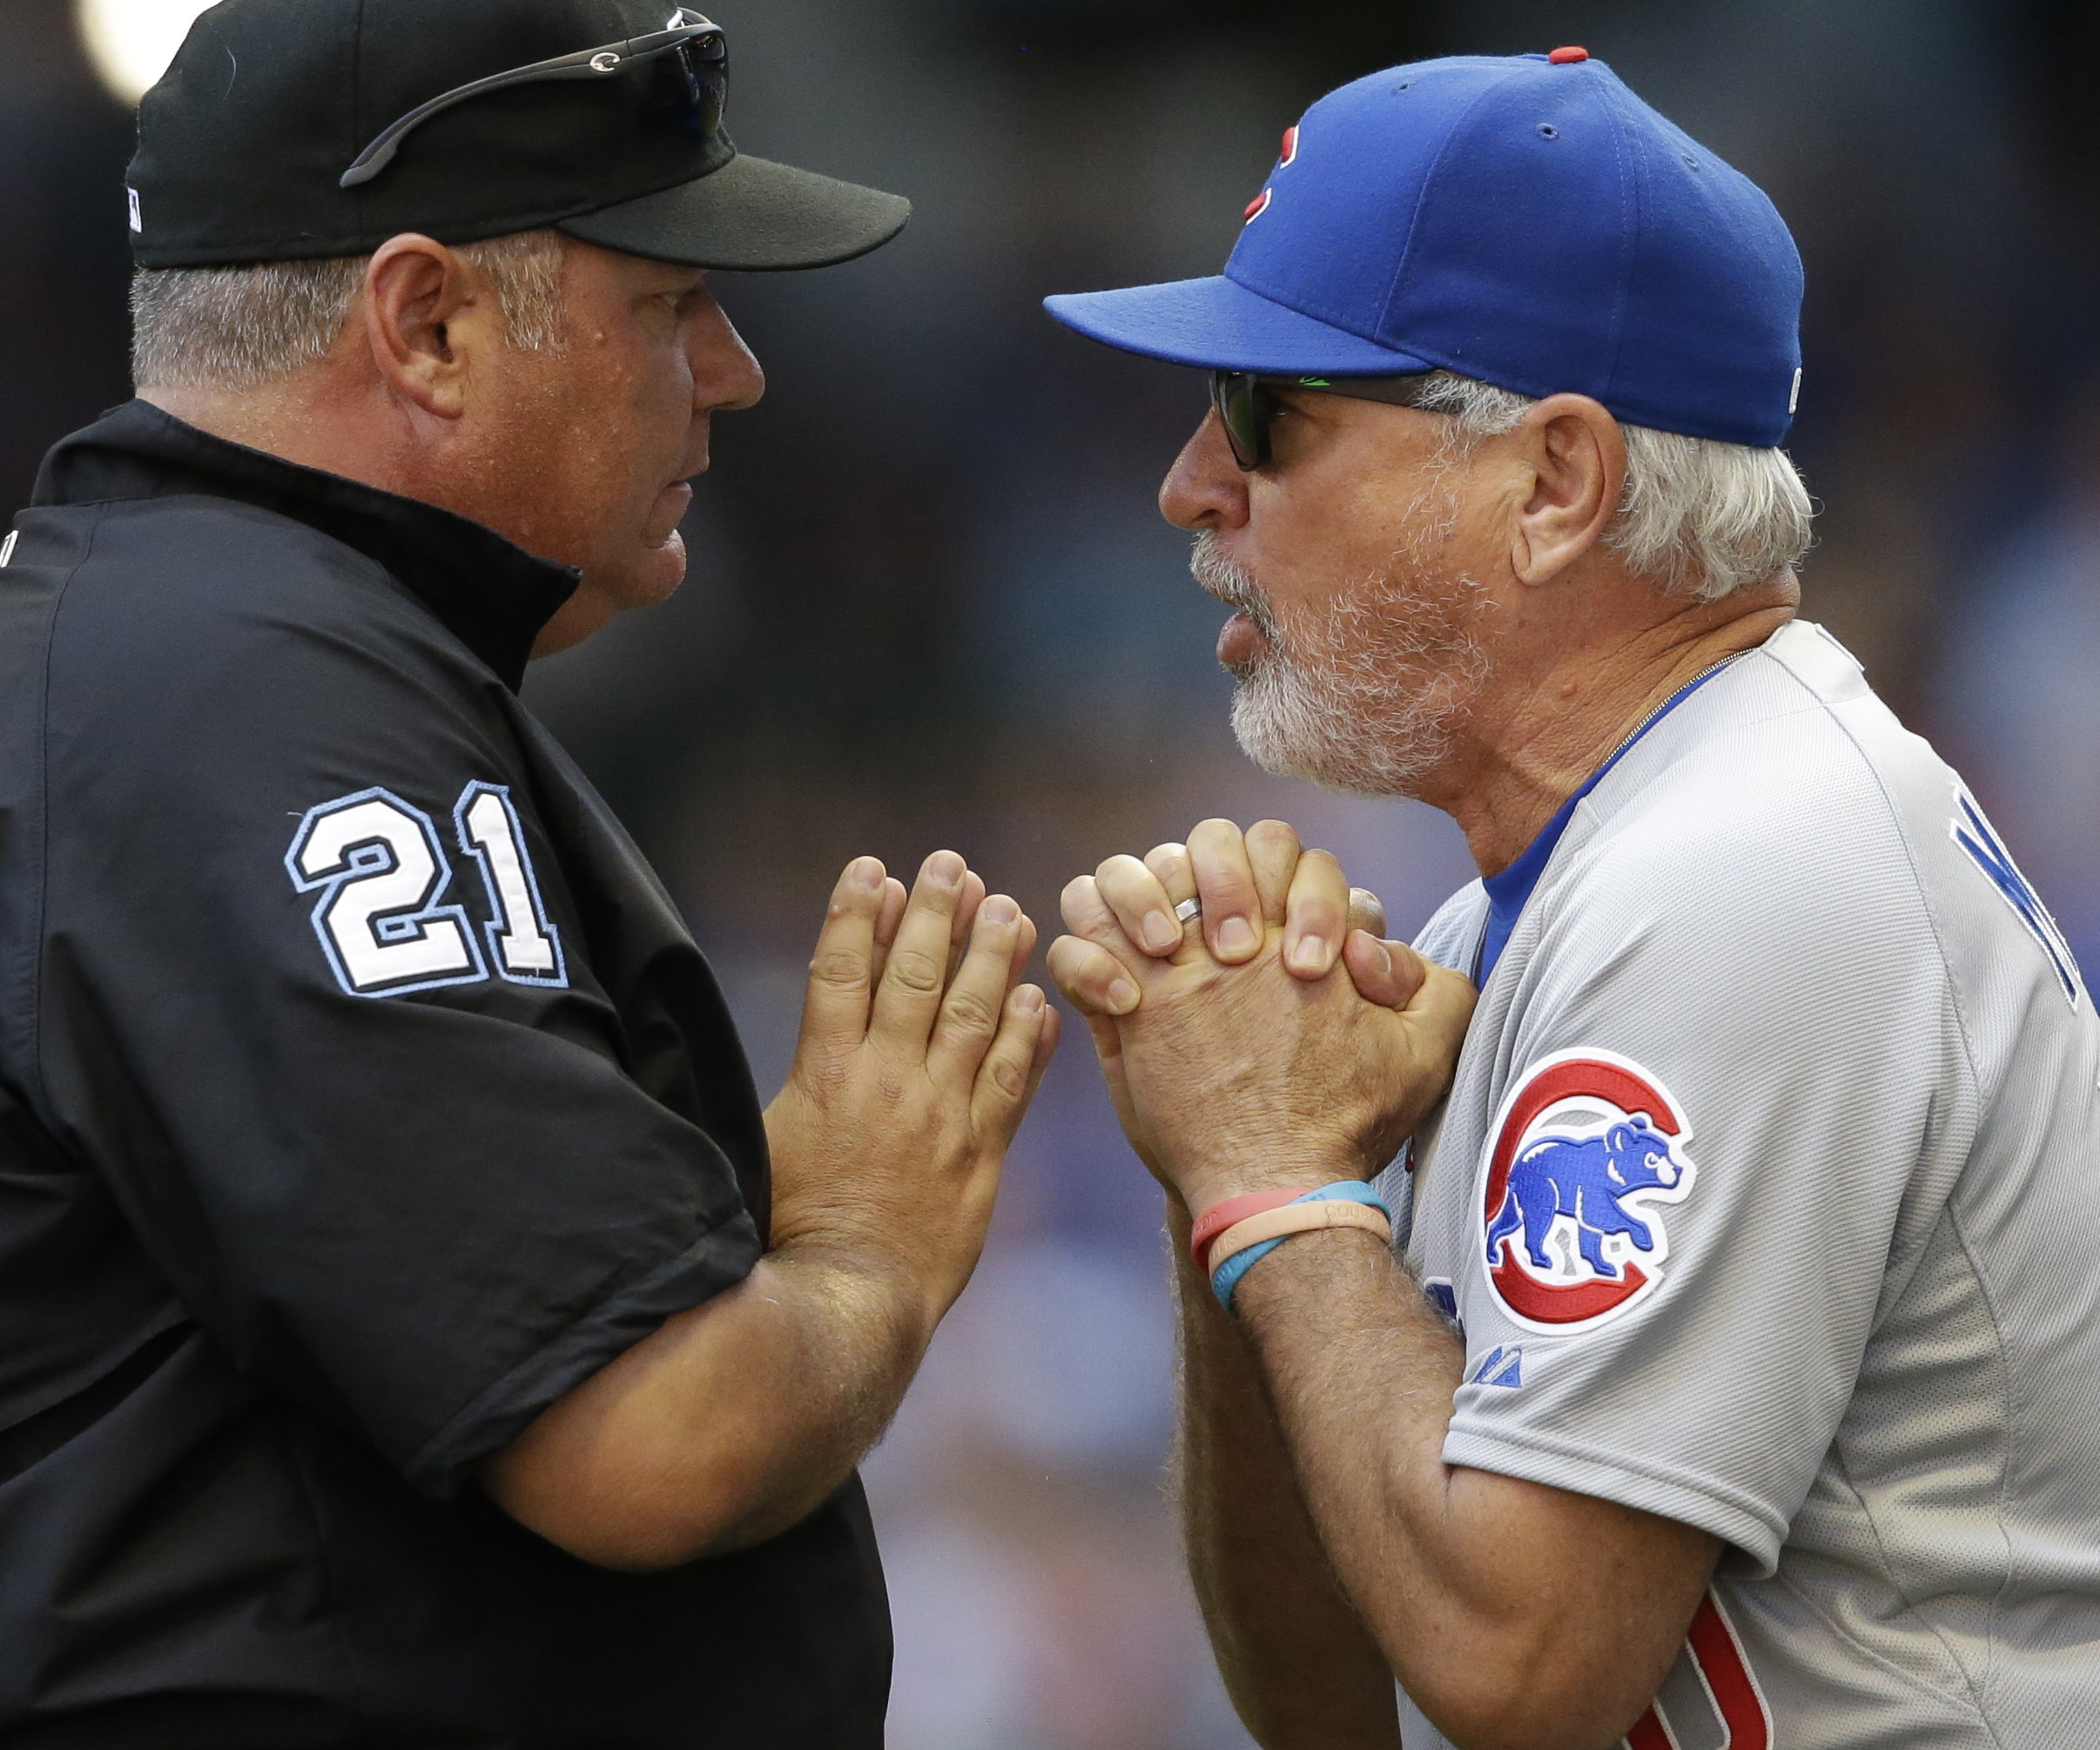 There are two types of baseball managers: the hard-ass and the so-called players' manager. In that dichotomy, Maddon would have to be considered a players' manager.